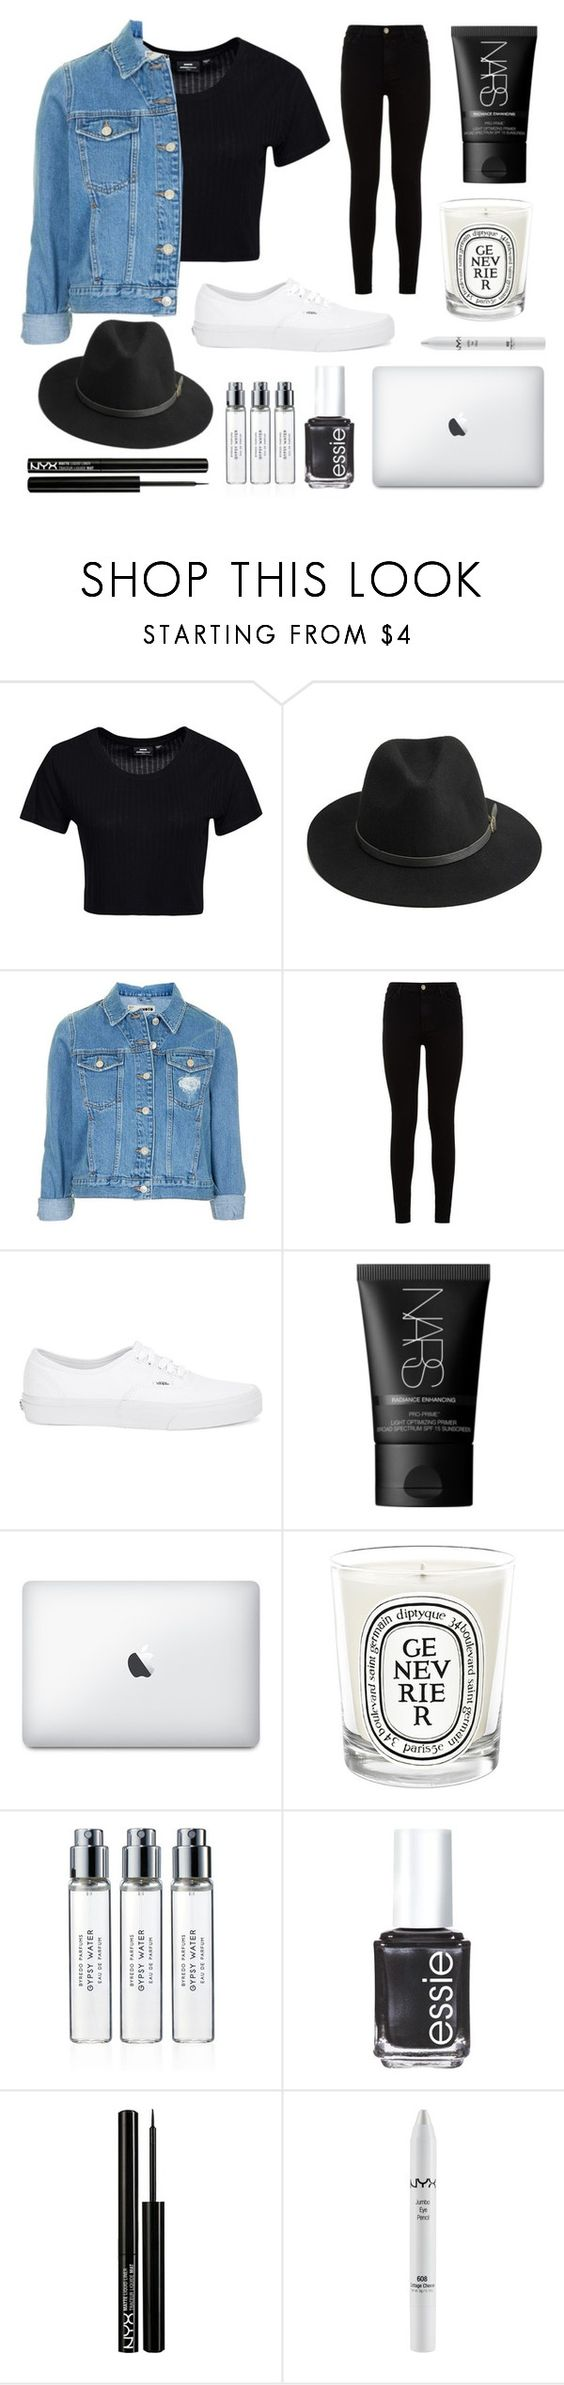 """maybe someday "" by anomalyyy ❤ liked on Polyvore featuring Dr. Denim, BeckSöndergaard, Topshop, 7 For All Mankind, Vans, NARS Cosmetics, Diptyque, Byredo, Essie and NYX"